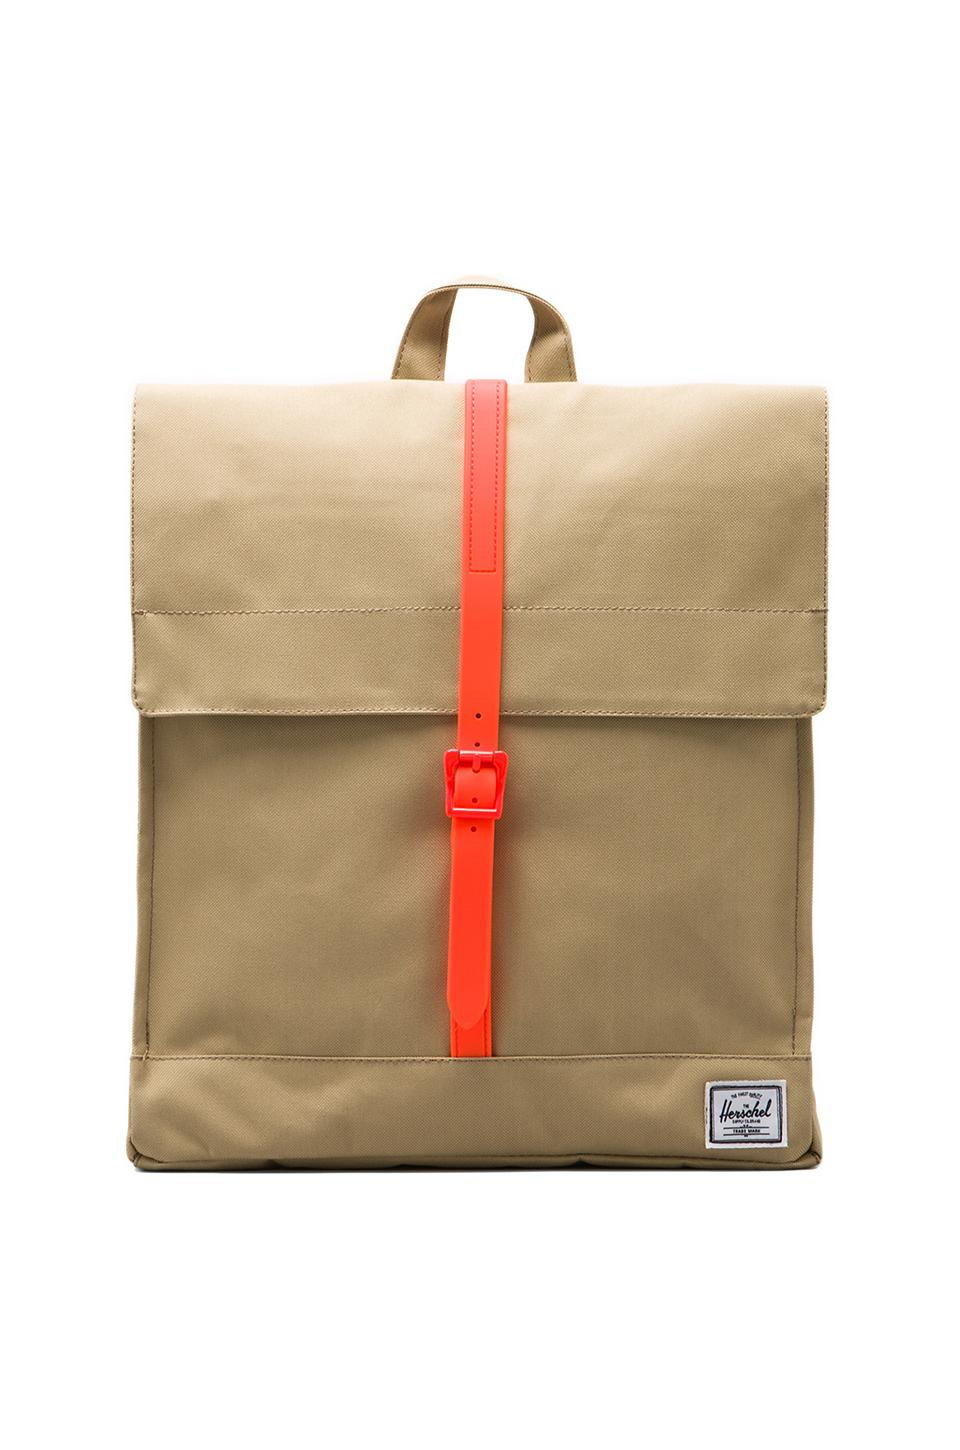 Herschel Supply Co. Weather Pack City in Khaki/Orange Rubber